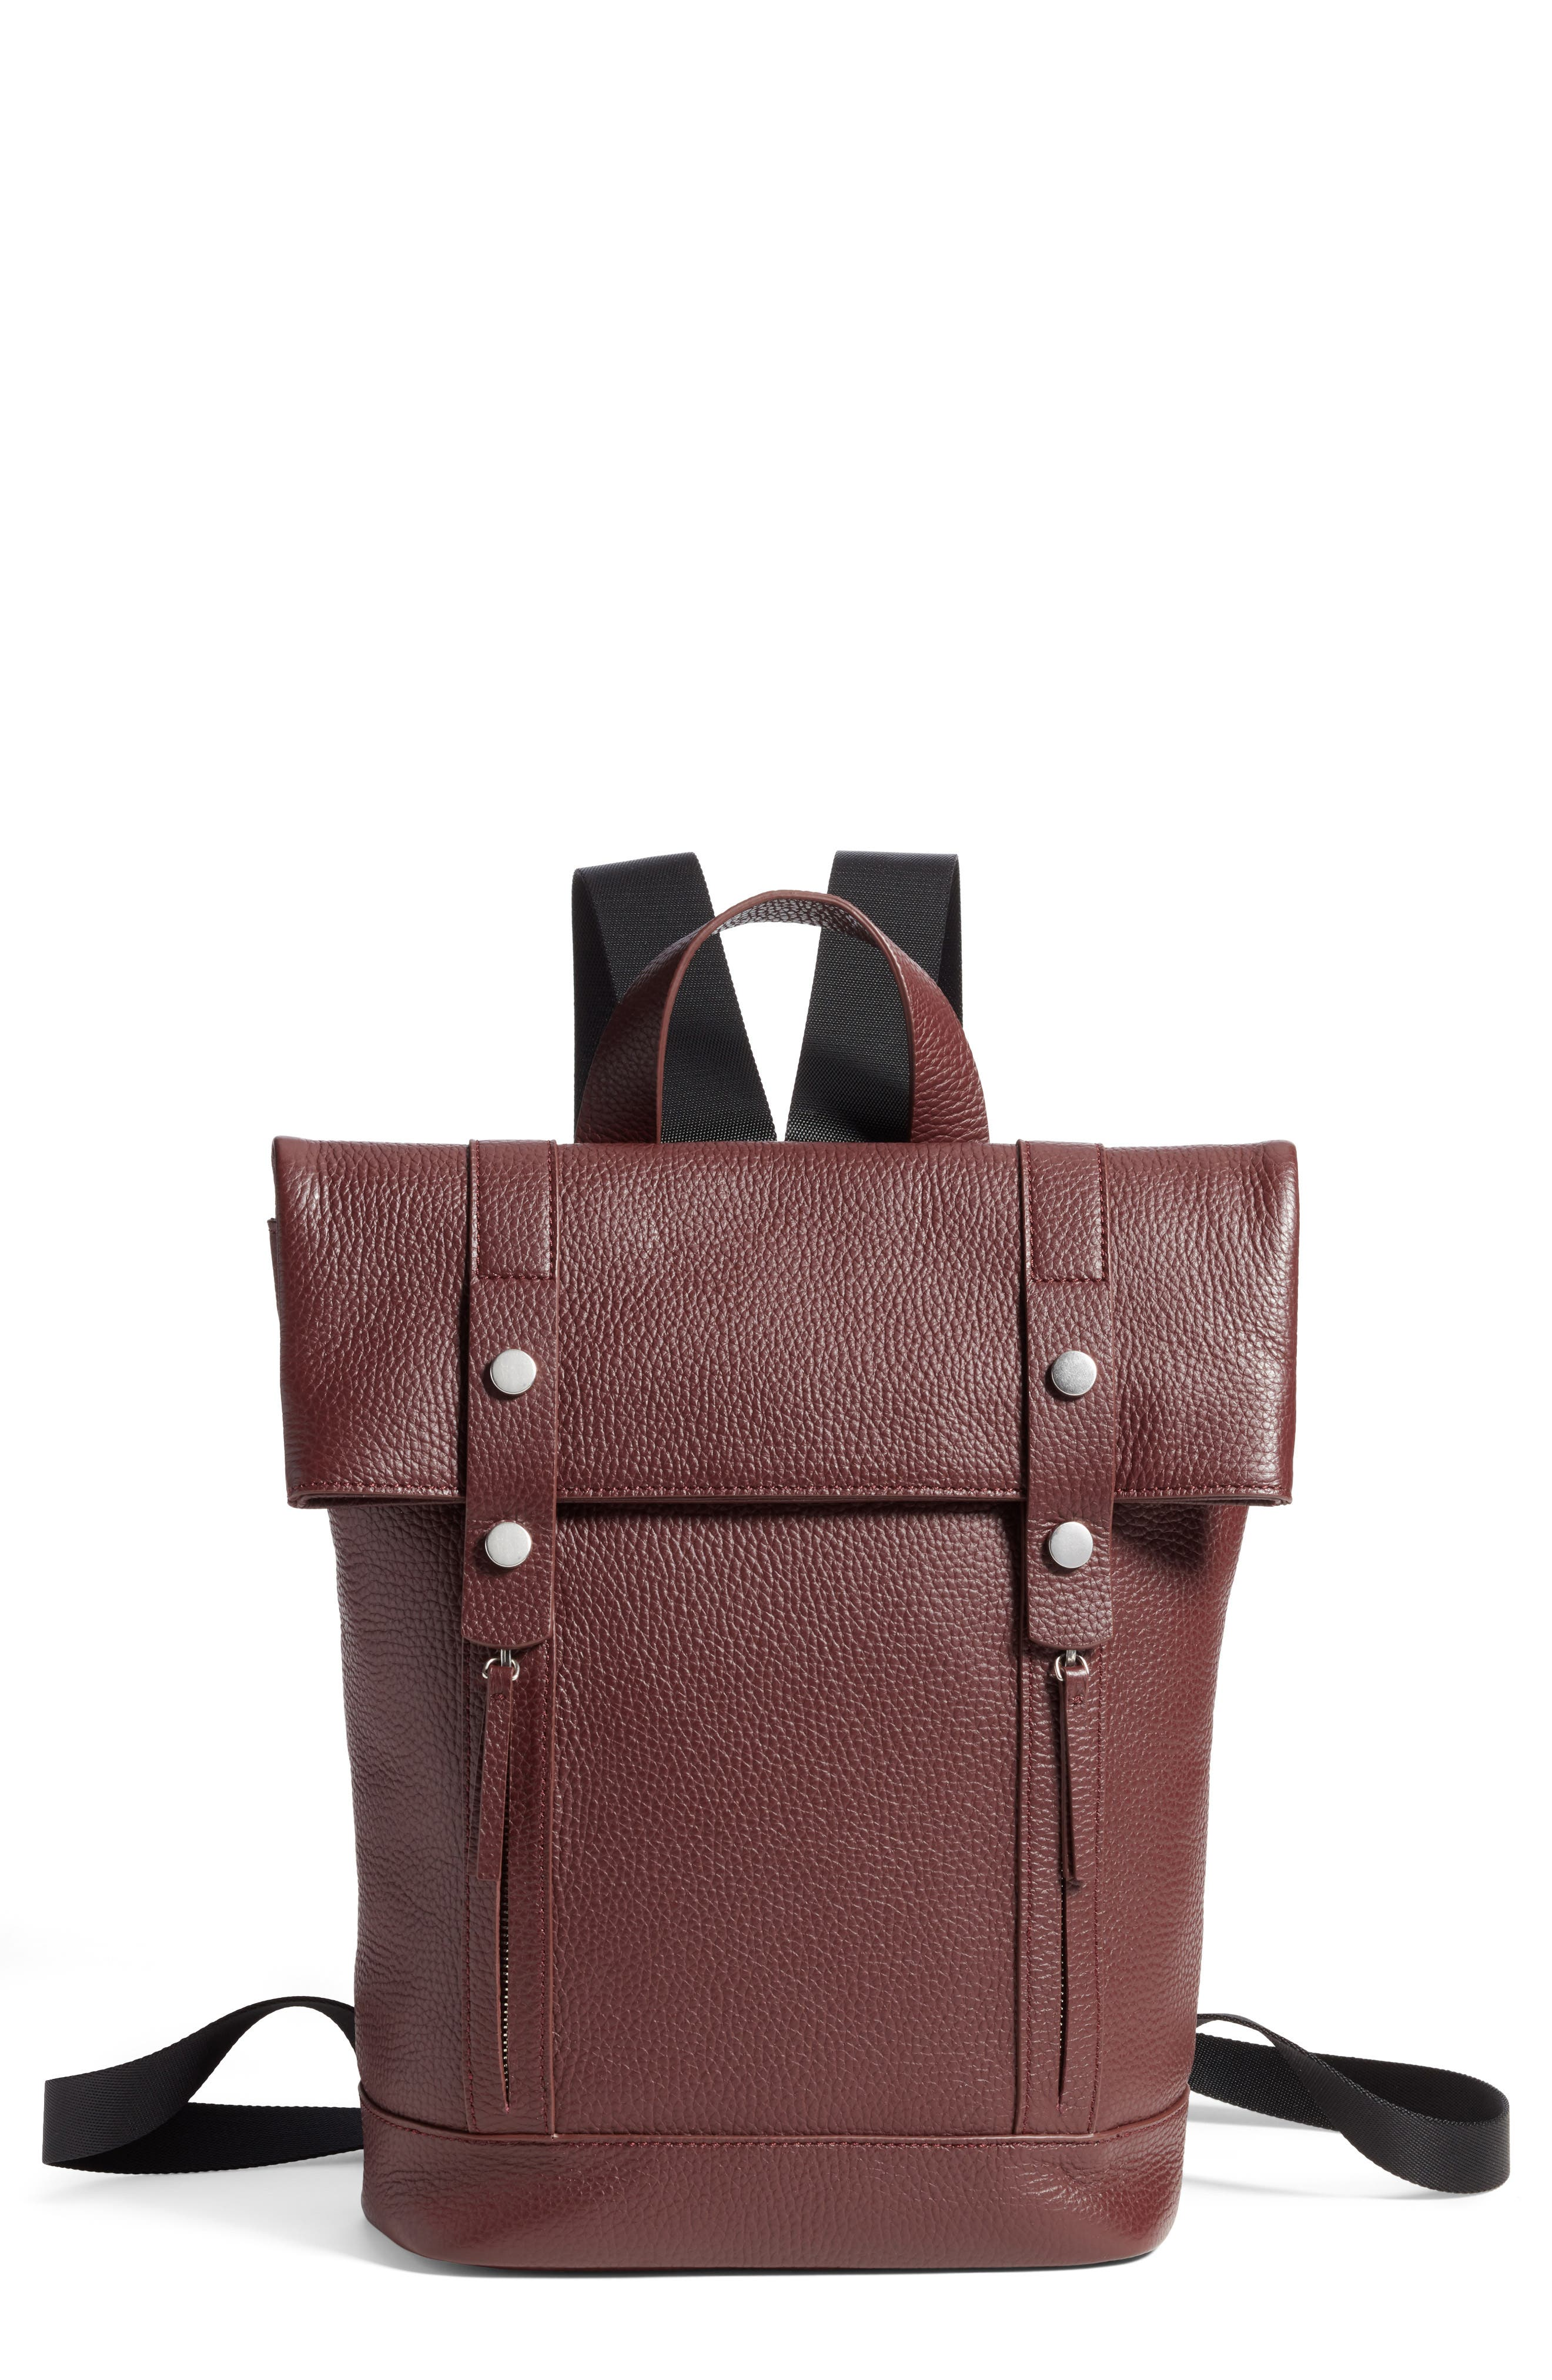 Remy Pebbled Leather Backpack,                             Main thumbnail 1, color,                             BURGUNDY FIG